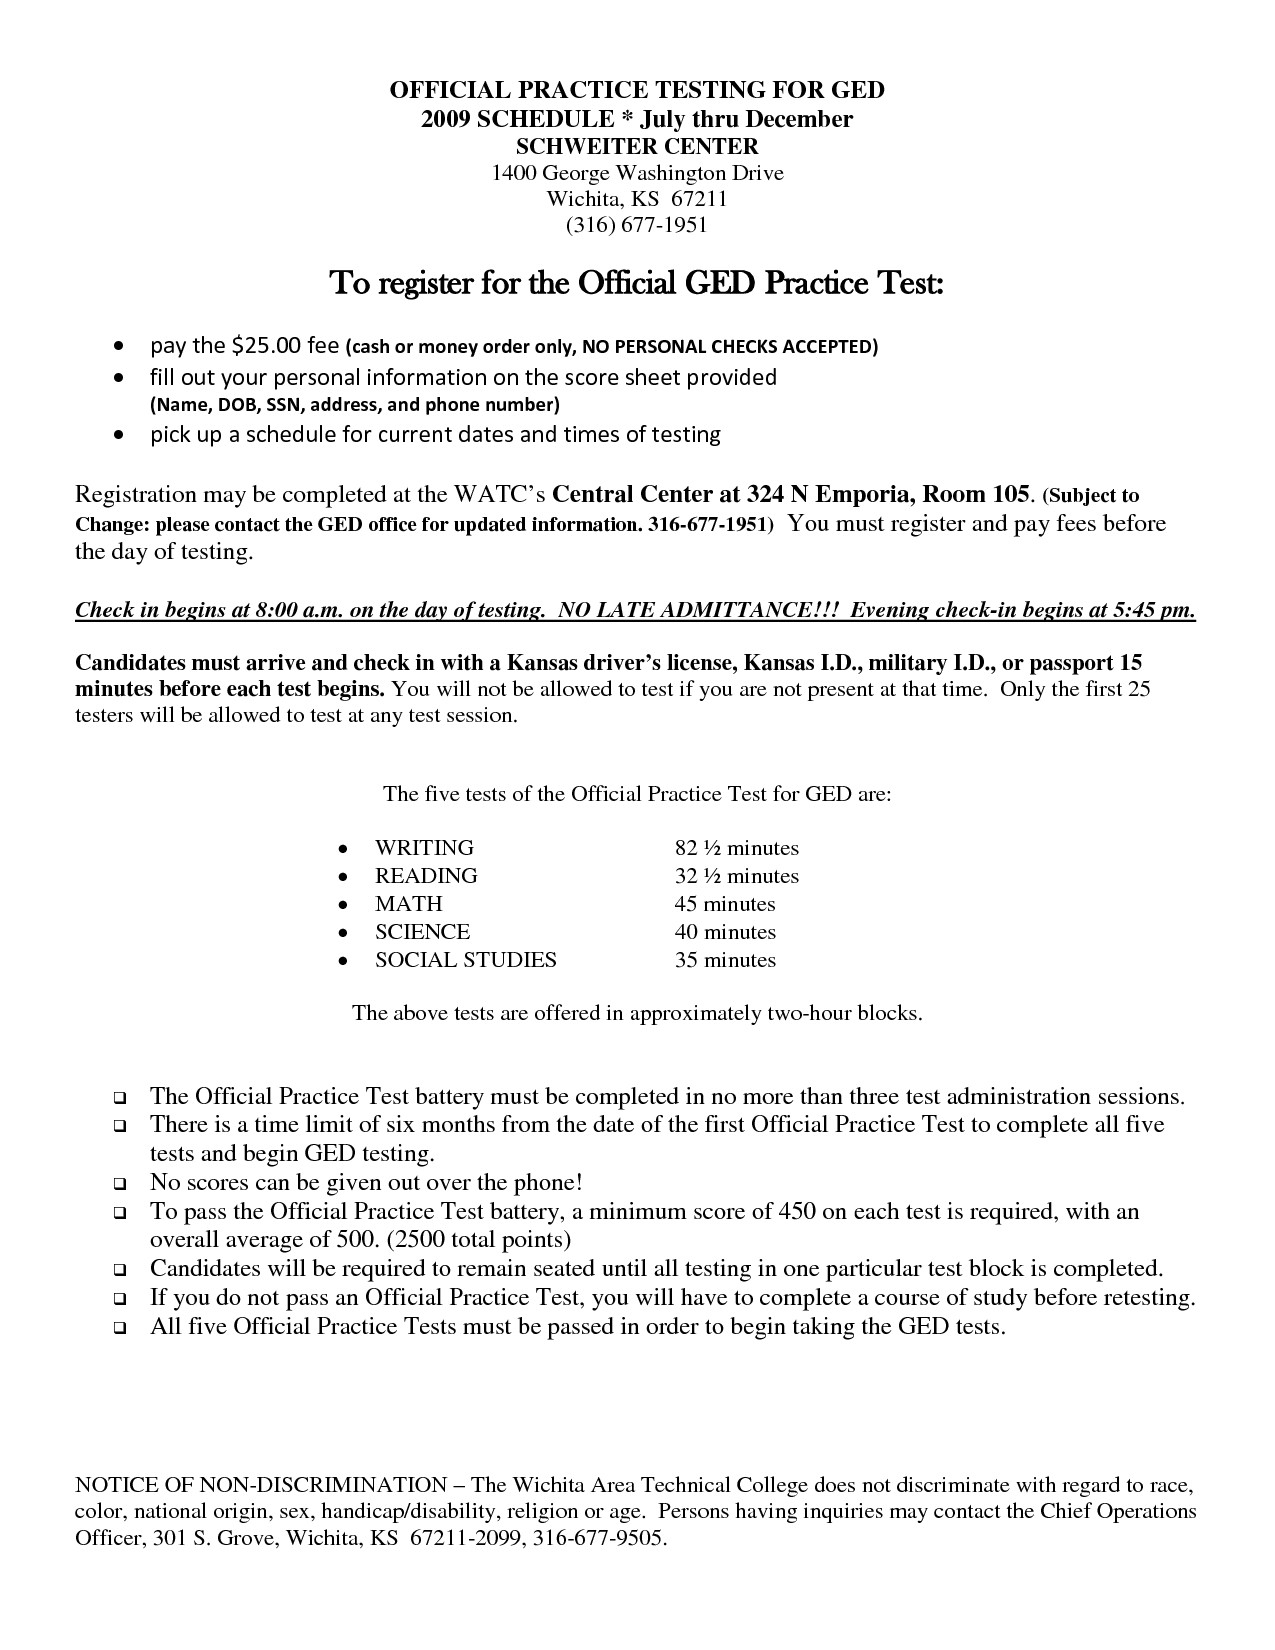 Mathts Printable Ged Practice Test With Answers Unique Best Of To - Ged Math Practice Test Free Printable